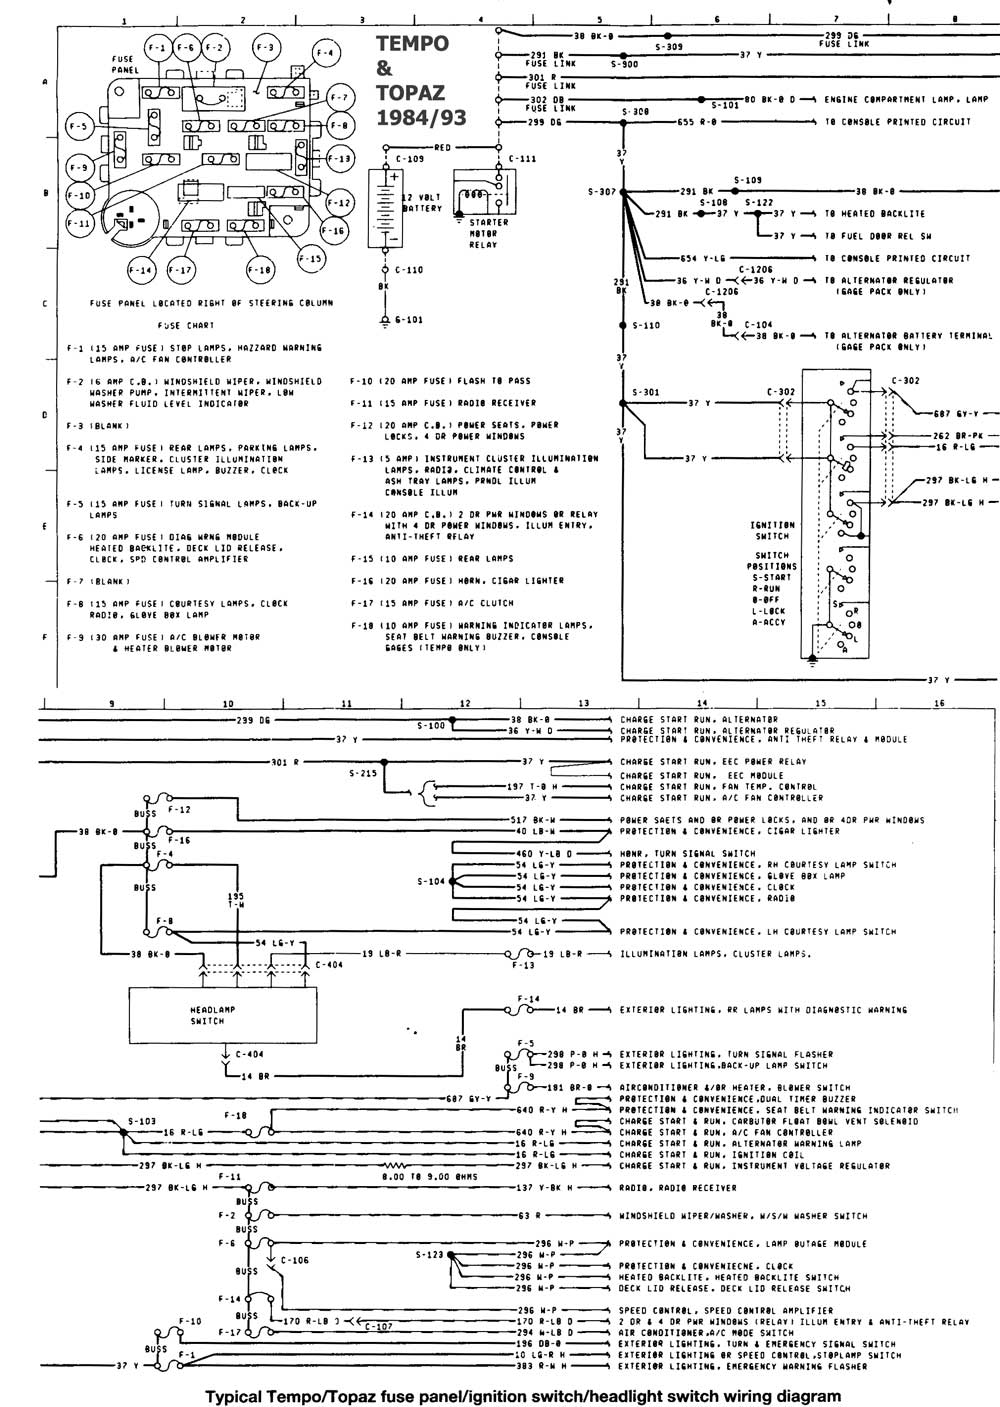 2003 ford windstar wiring diagram solidfonts 2001 ford windstar transmission wiring diagram